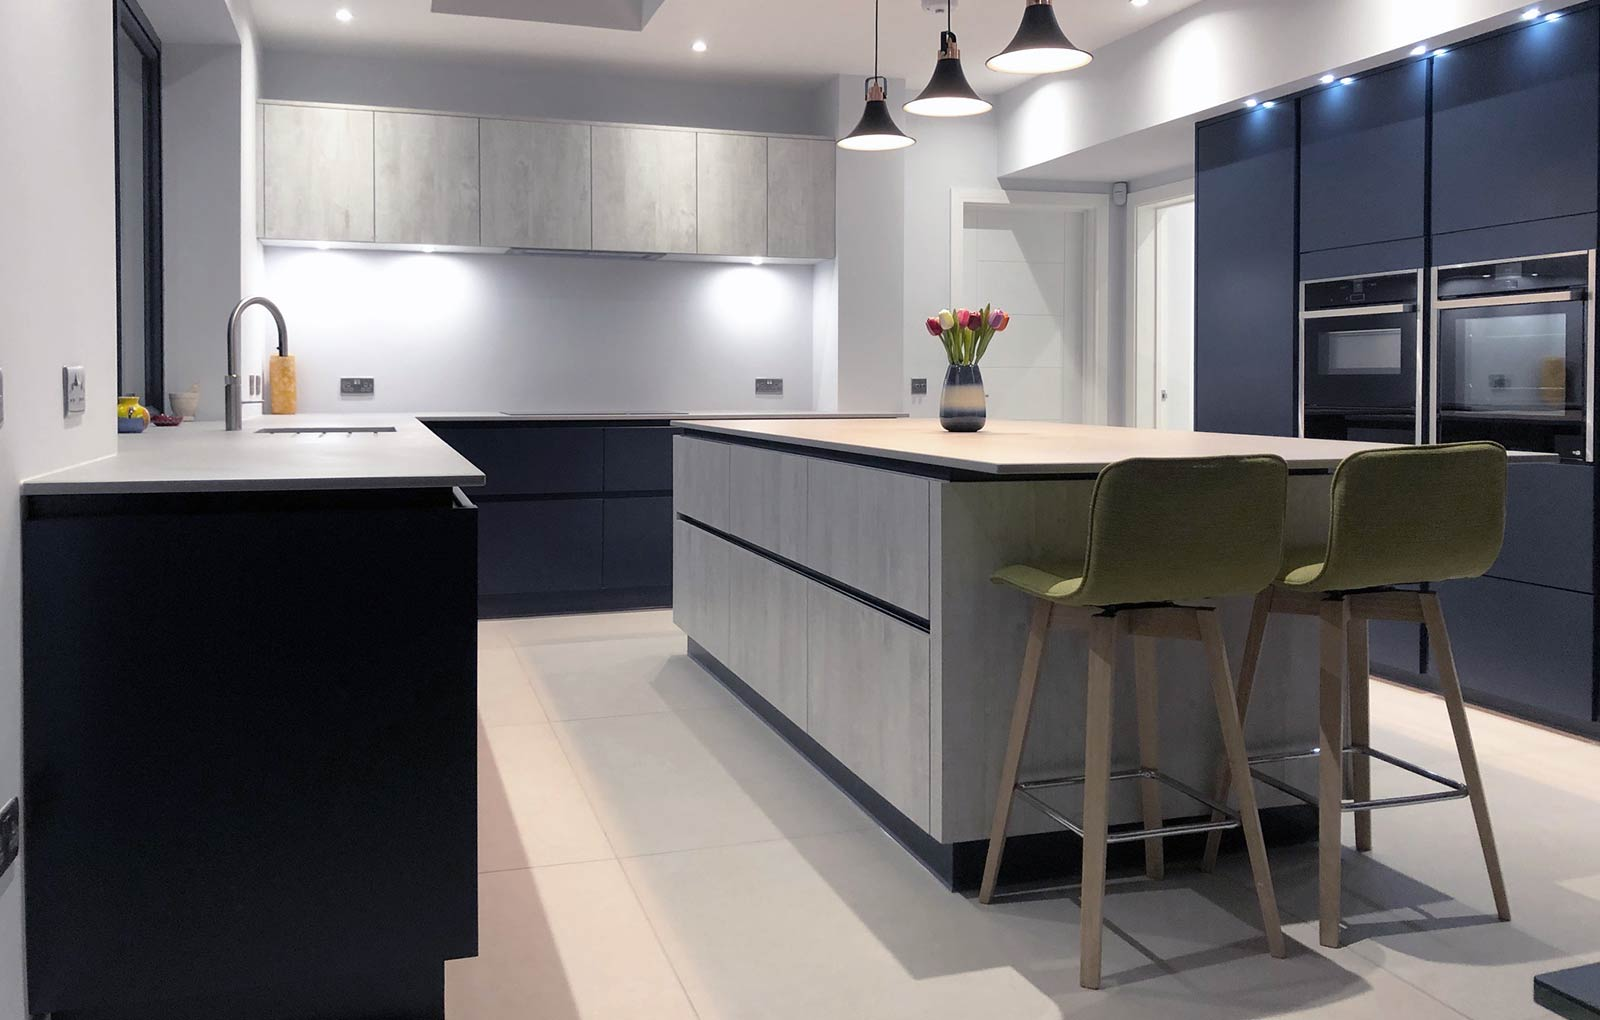 4 ideas for the perfect handleless kitchen design find on beautiful kitchen pictures ideas houzz id=92991